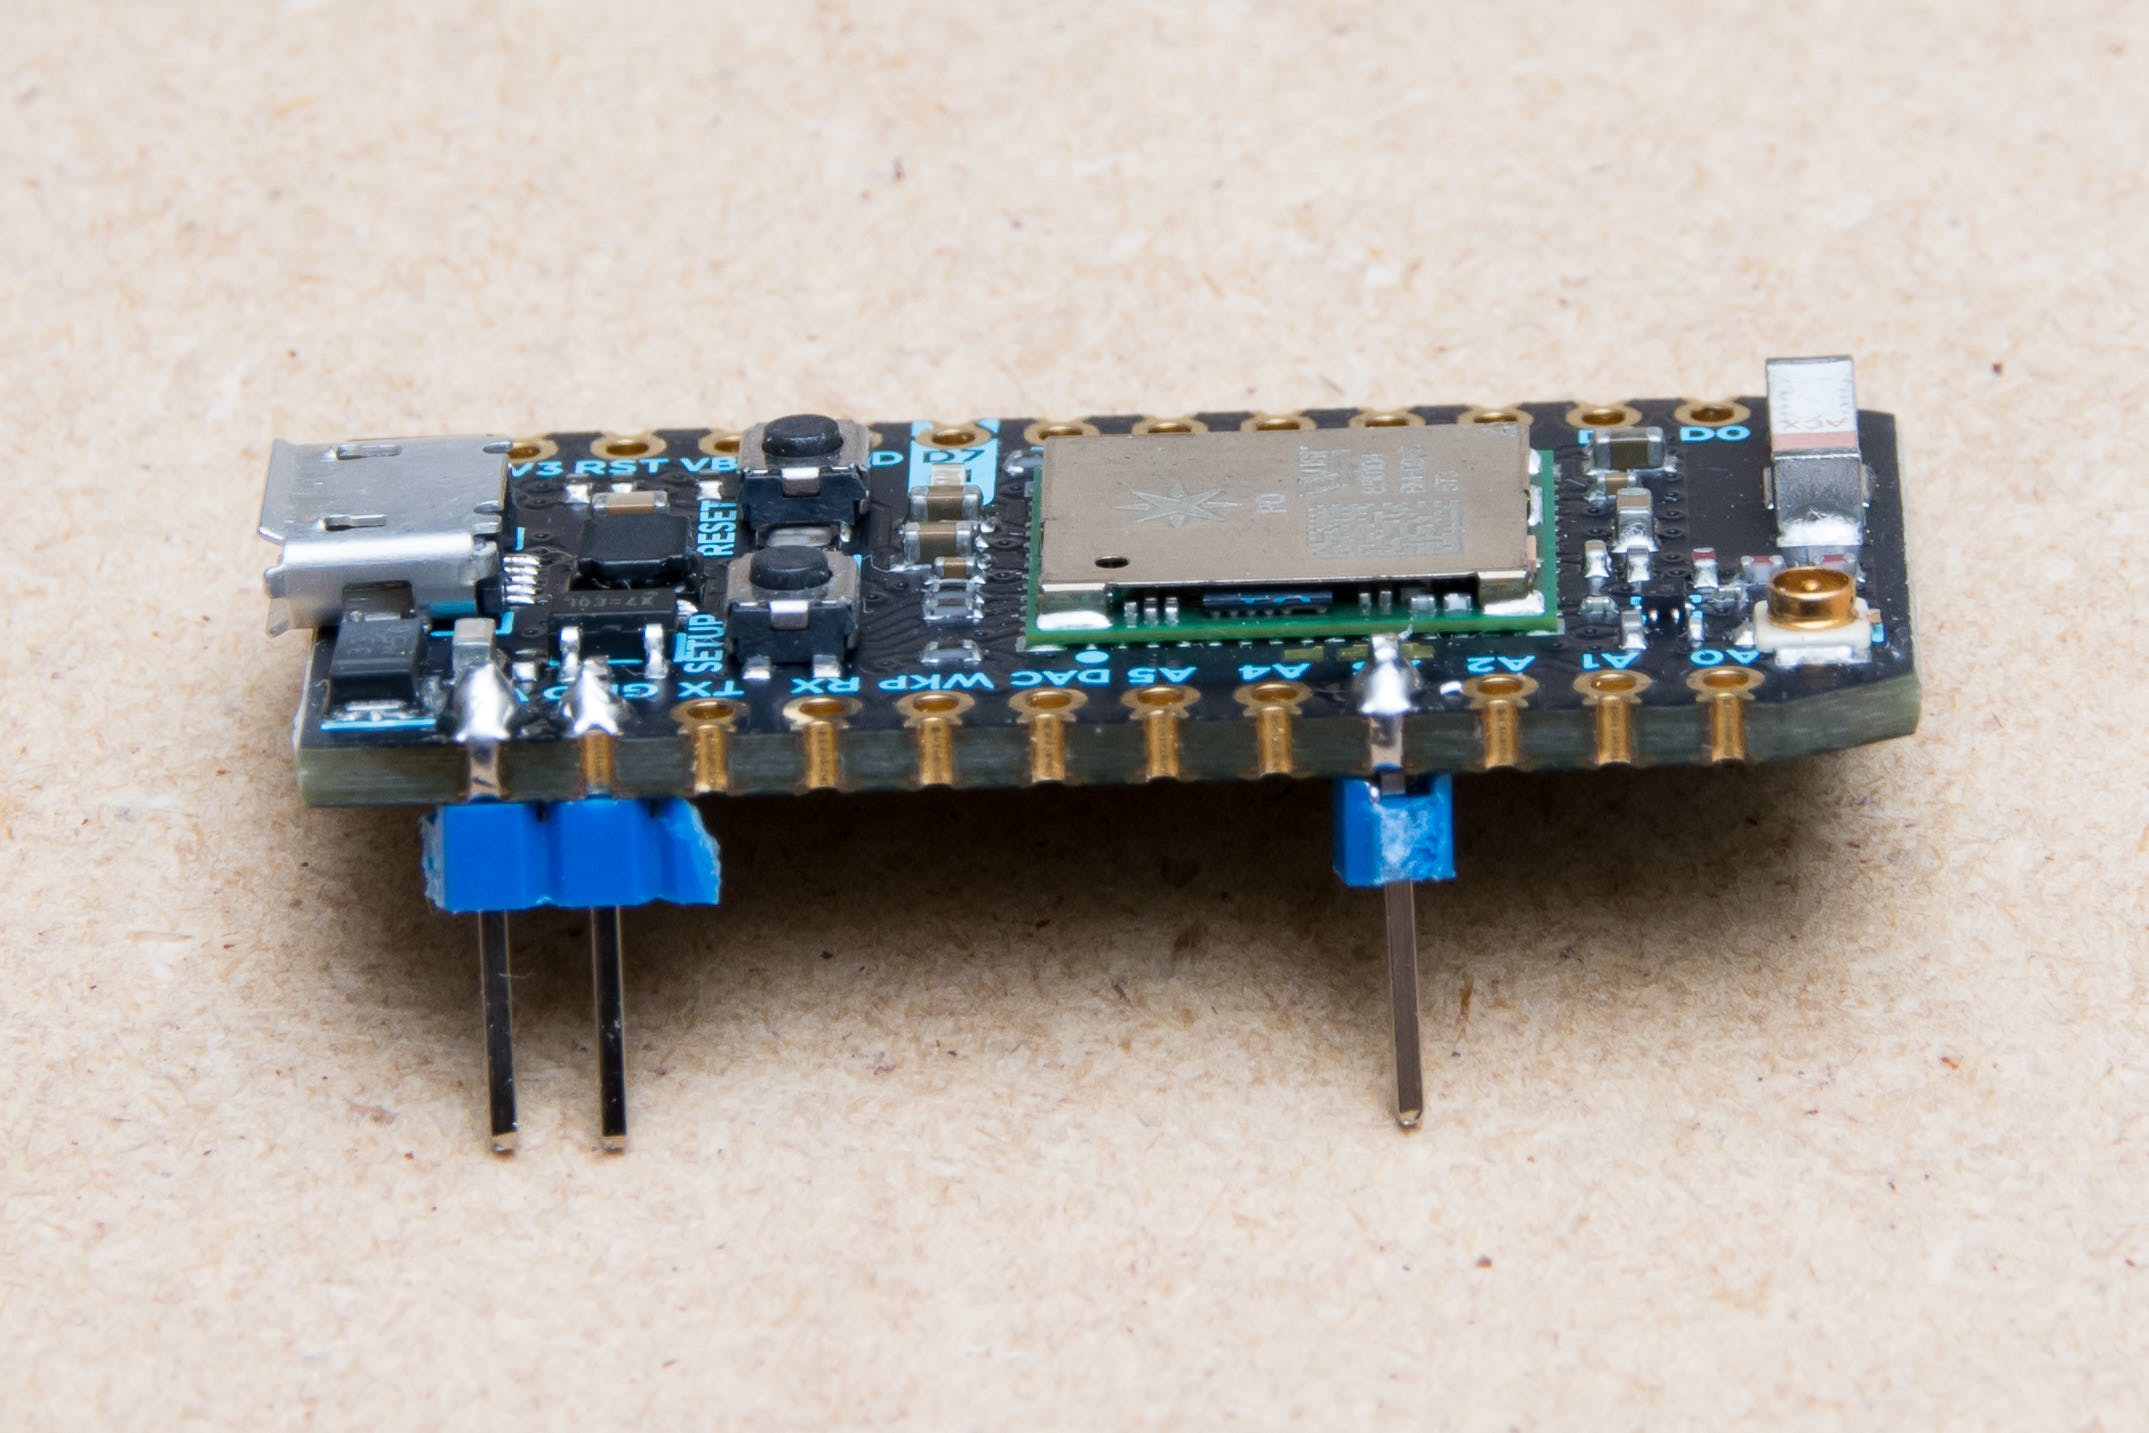 Headers soldered to Photon